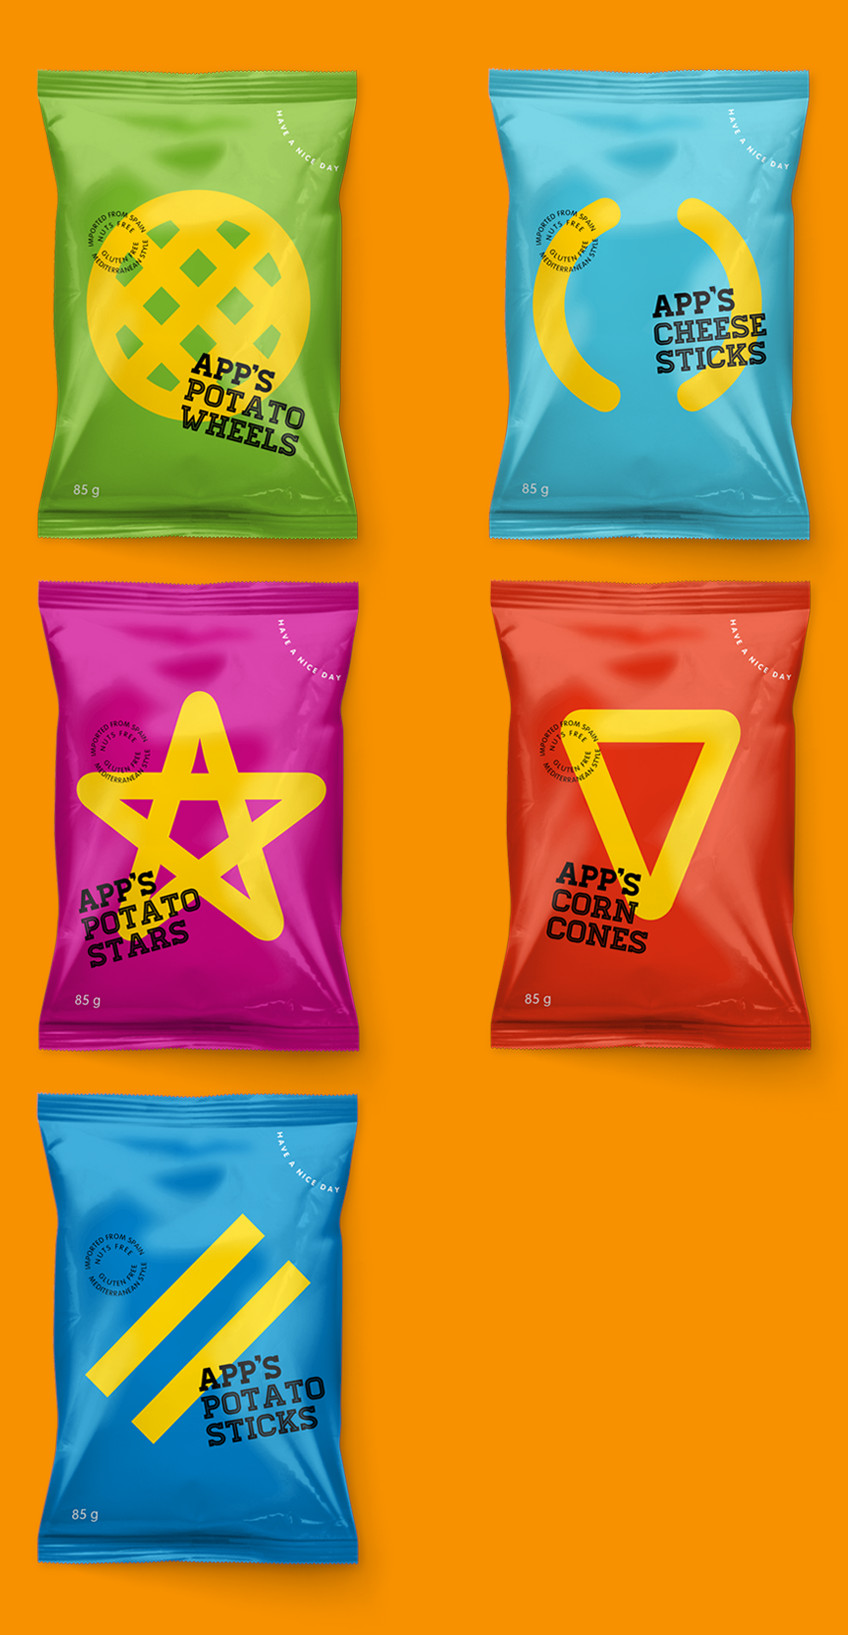 App's Diseño Packaging Snack Potato Wheels Cheese Sticks Potato Stars Corn Cones Potato Sticks